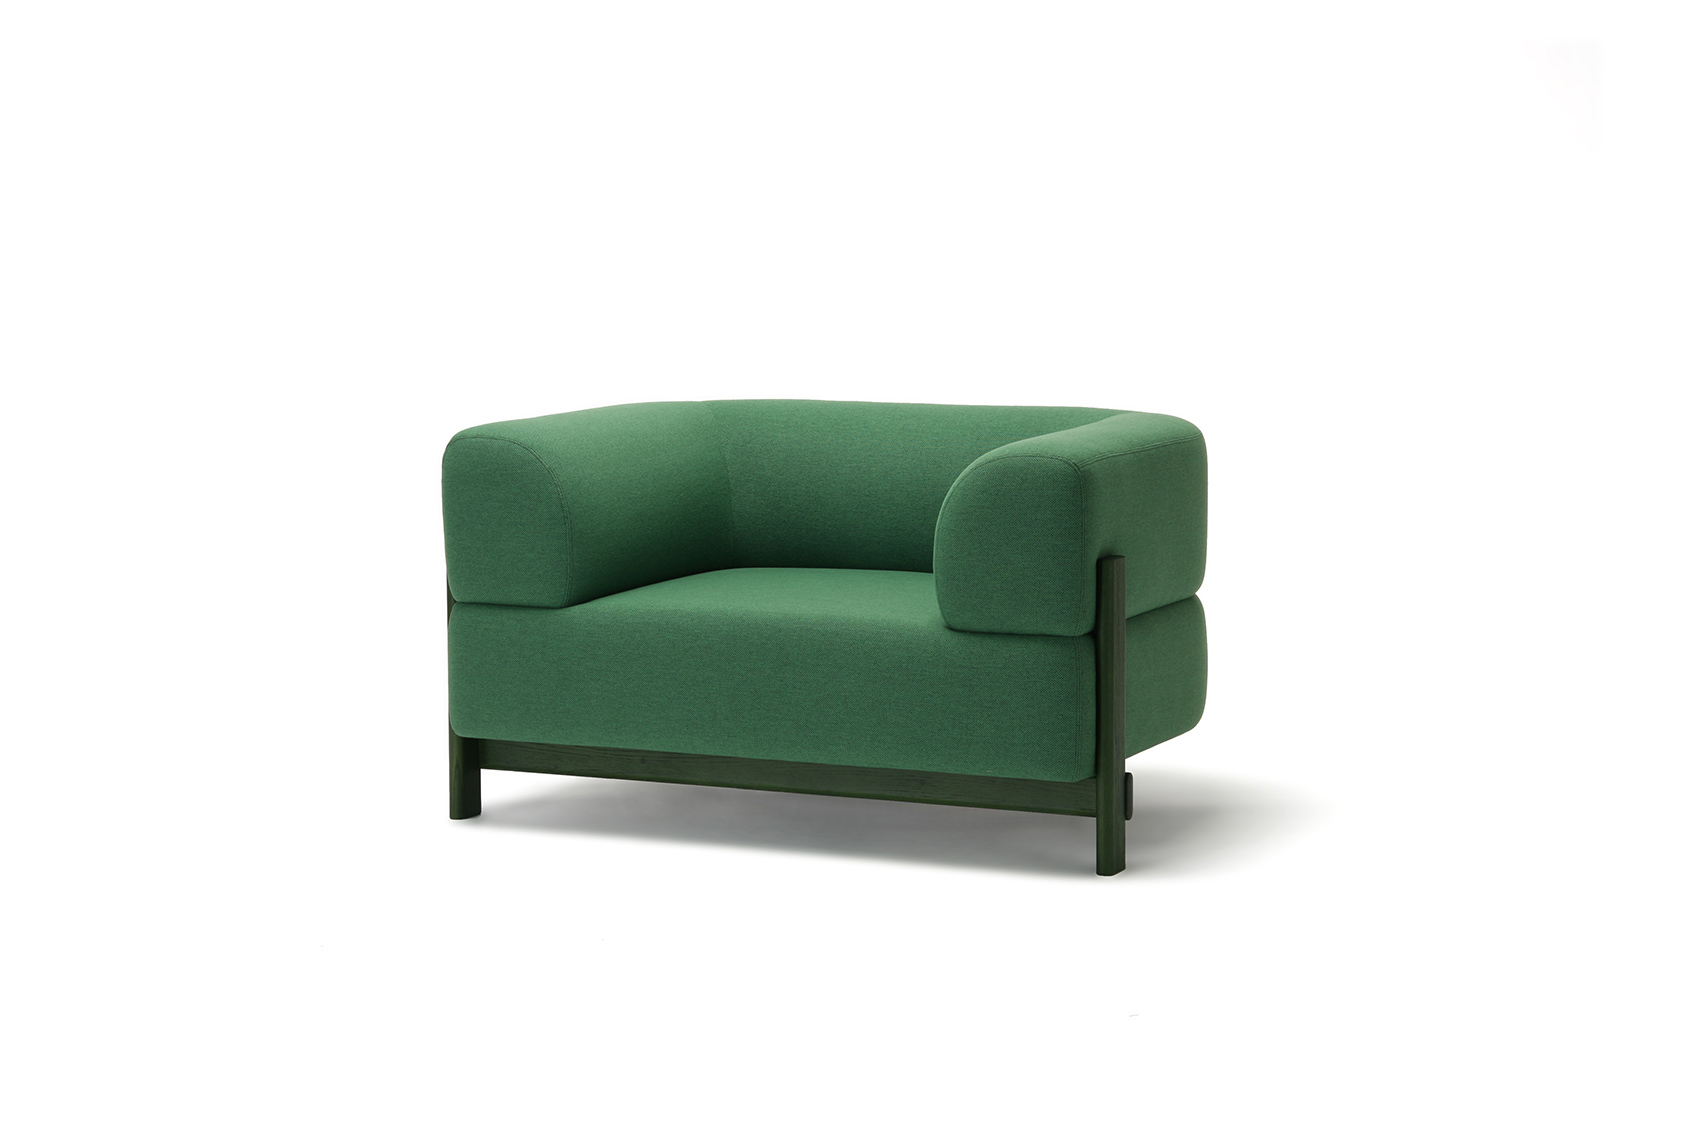 Karimoku_new_standard_elephant_sofa_1_seater_02